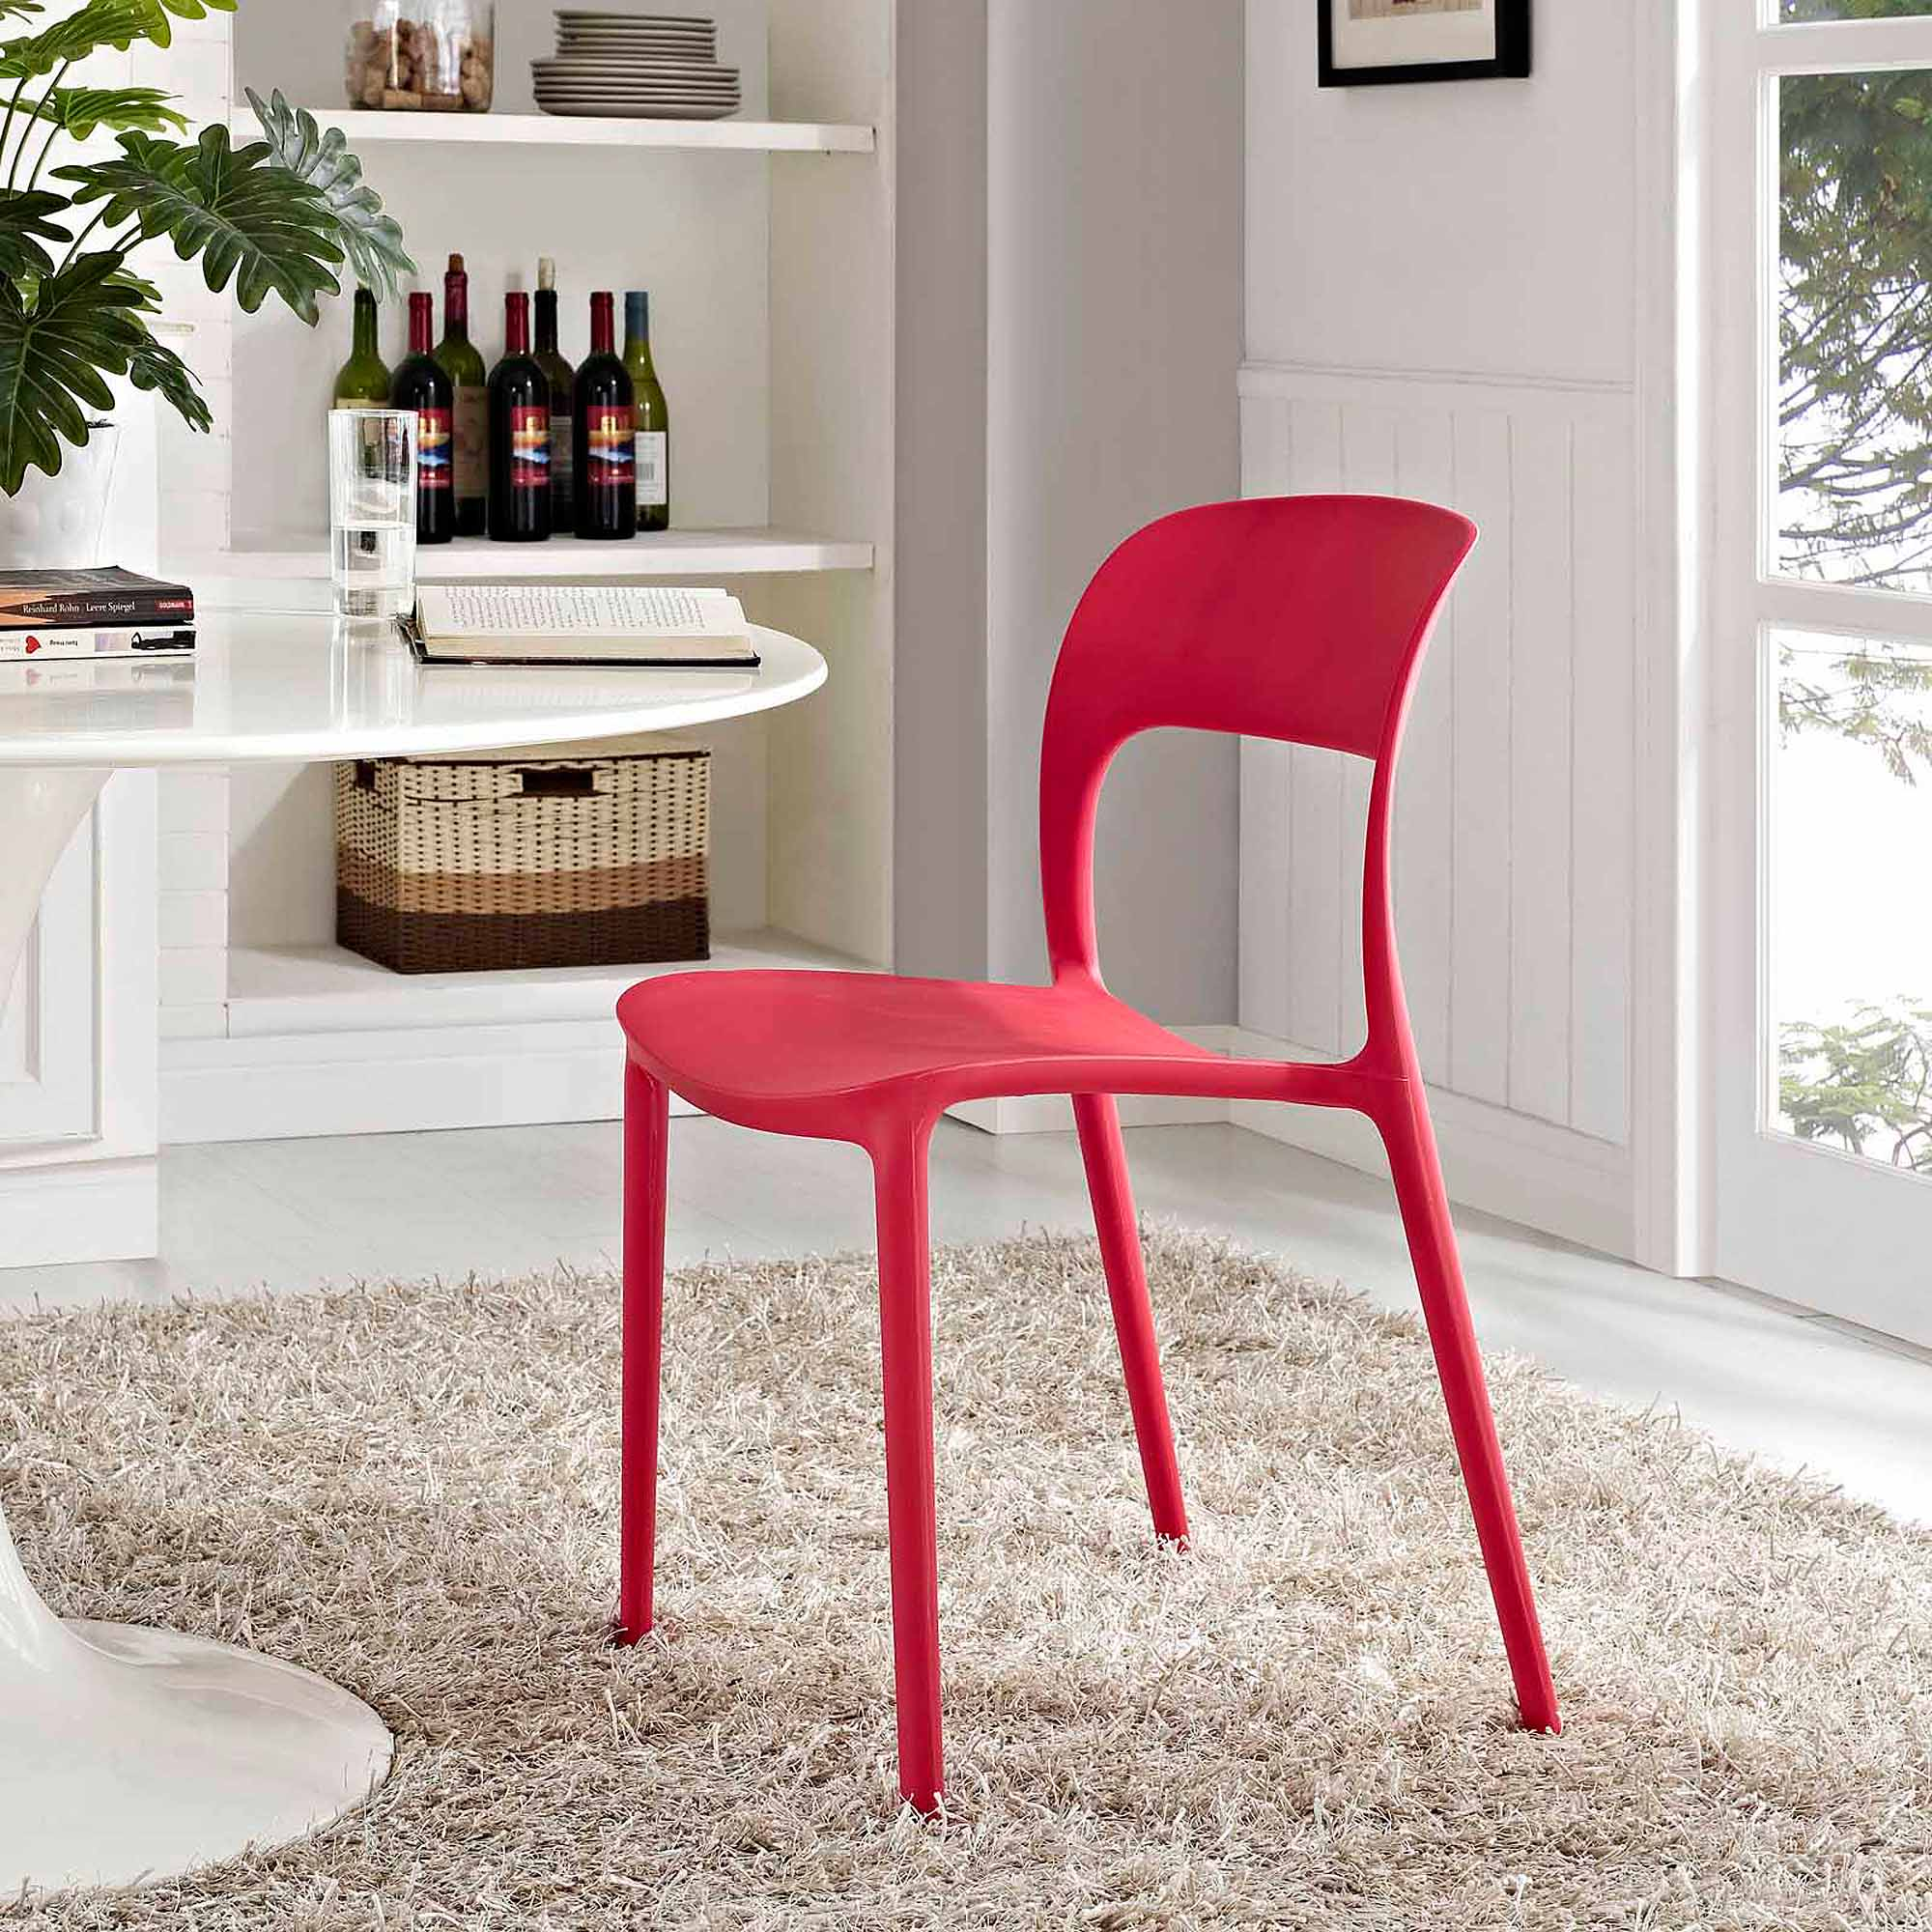 Modway Hop Dining Chair for Indoor or Outdoor Use, Multiple Colors